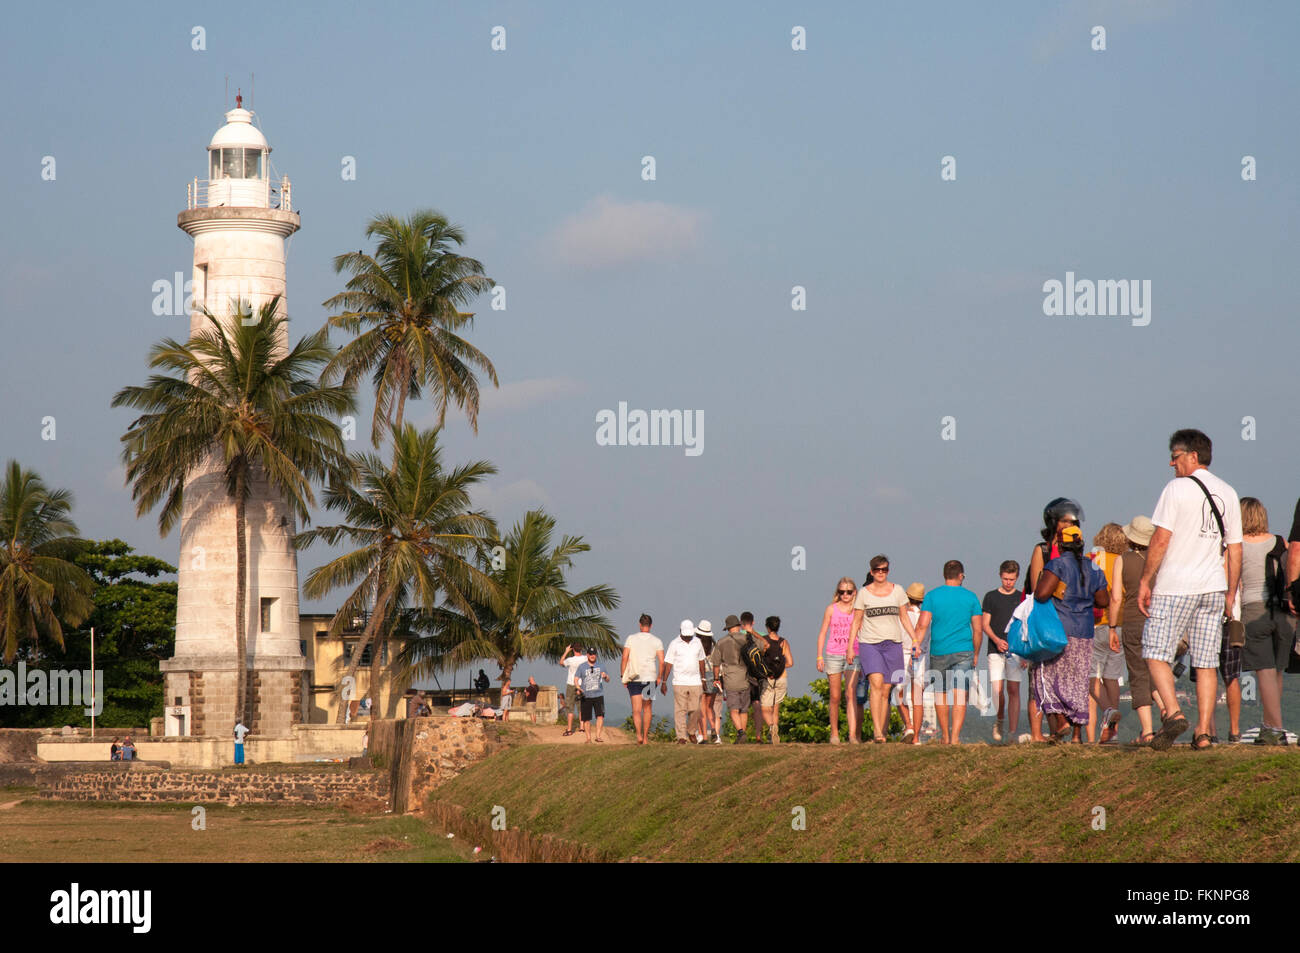 Tourists join local residents in the evening promenade along the ramparts of Galle Fort, Sri Lanka - Stock Image